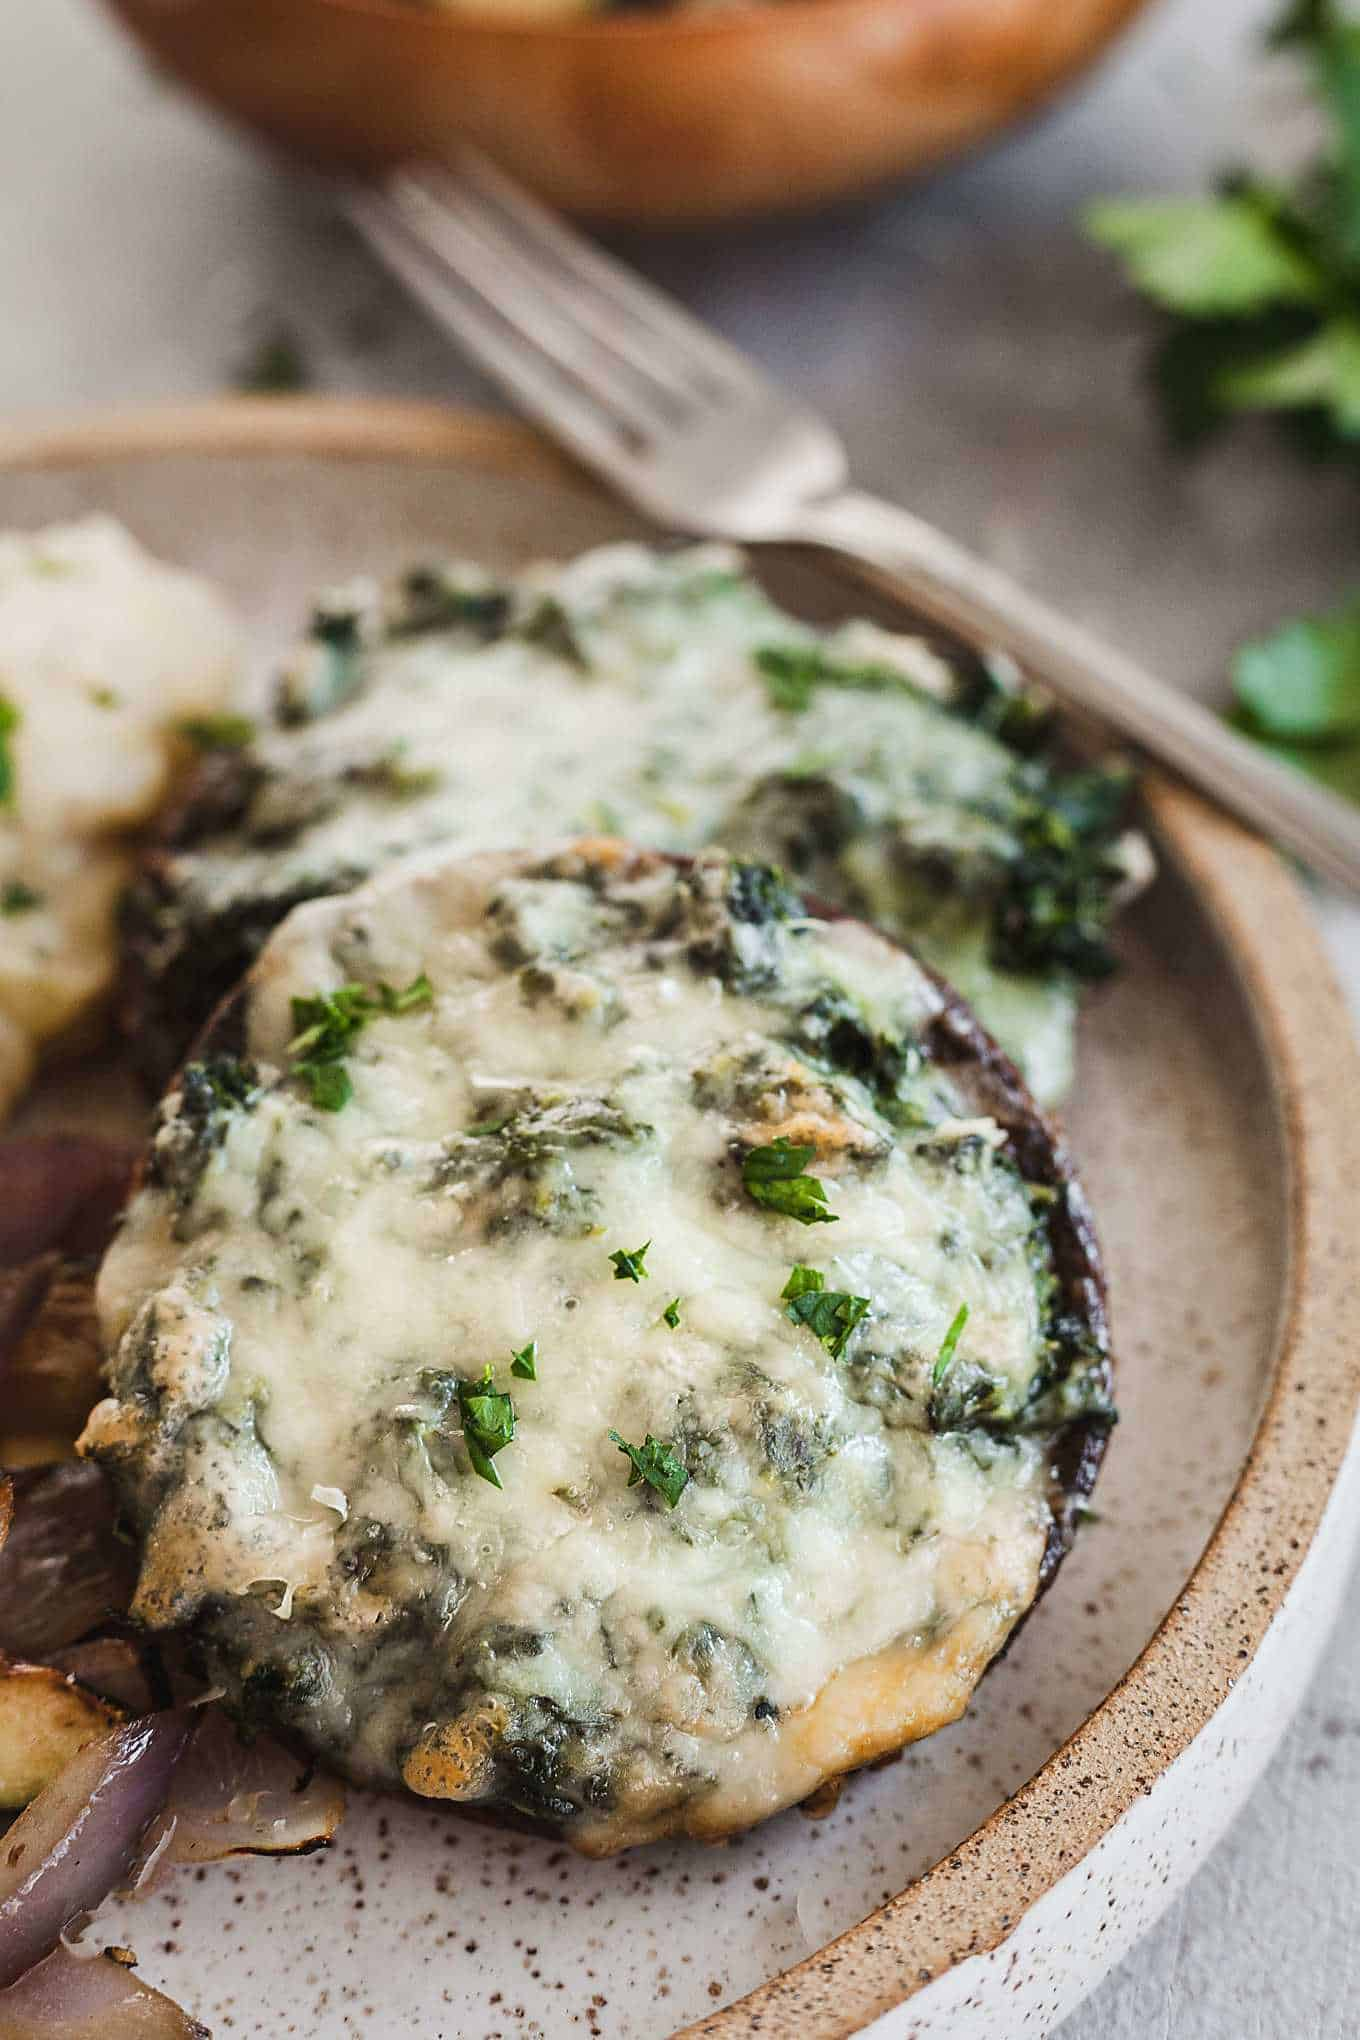 spinach and cheese stuffed portobello mushrooms on a speckled plate